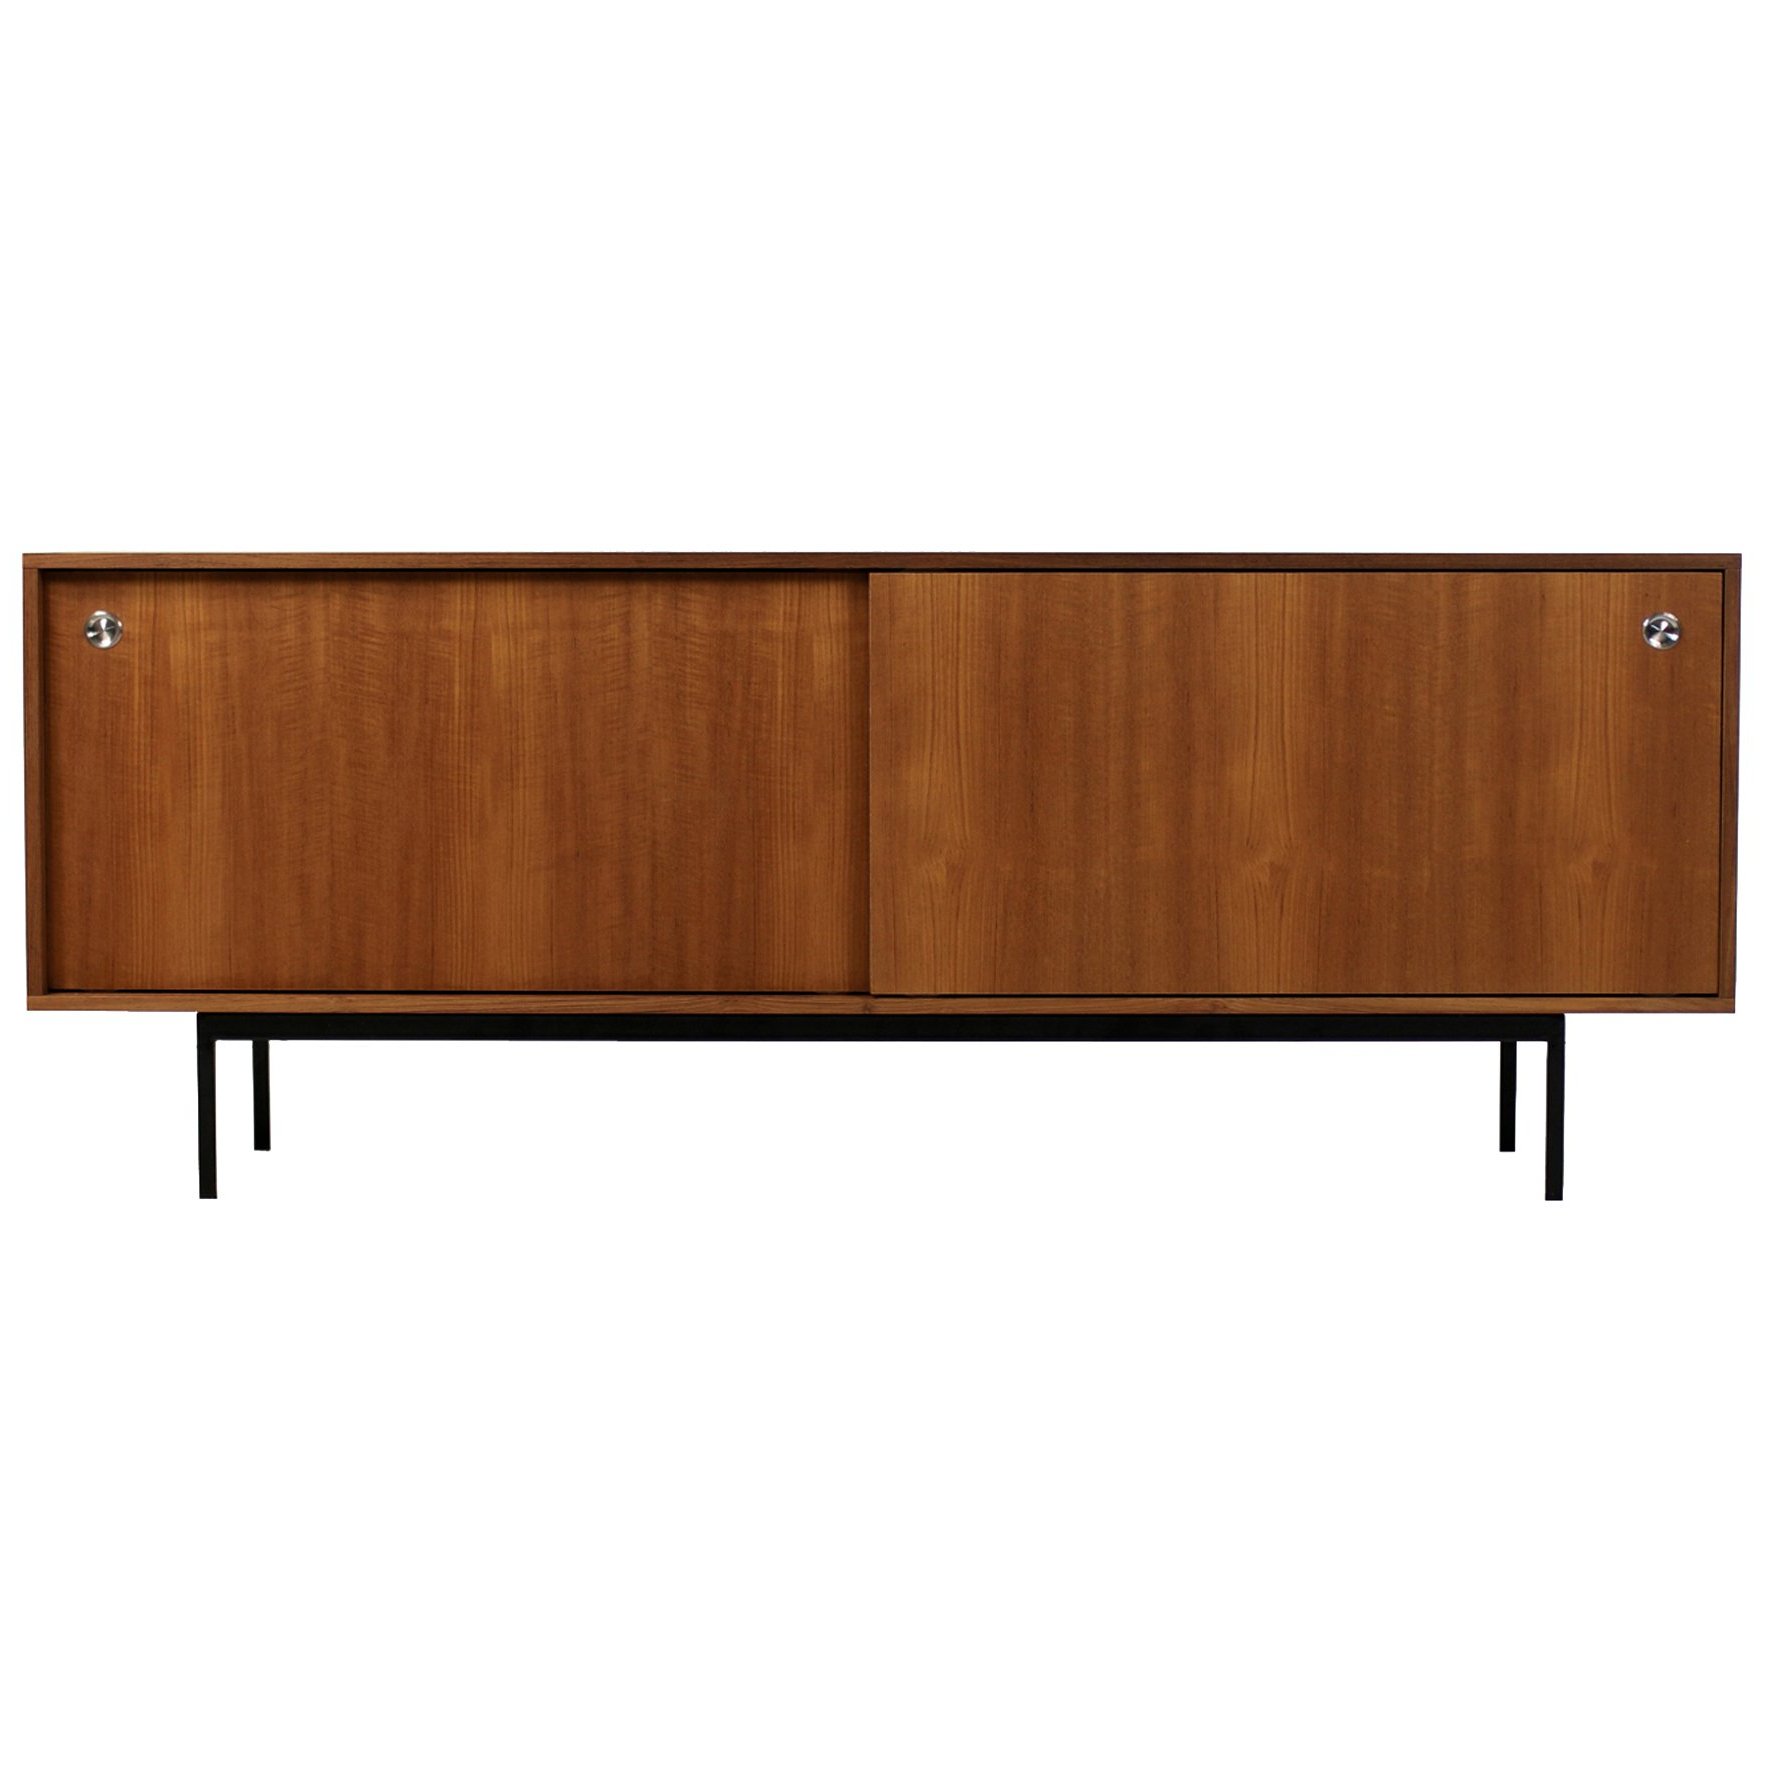 Popular Minimalist Teak Sideboardnathan Lindberg Design, Sliding Doors With Girard 4 Door Sideboards (View 12 of 20)